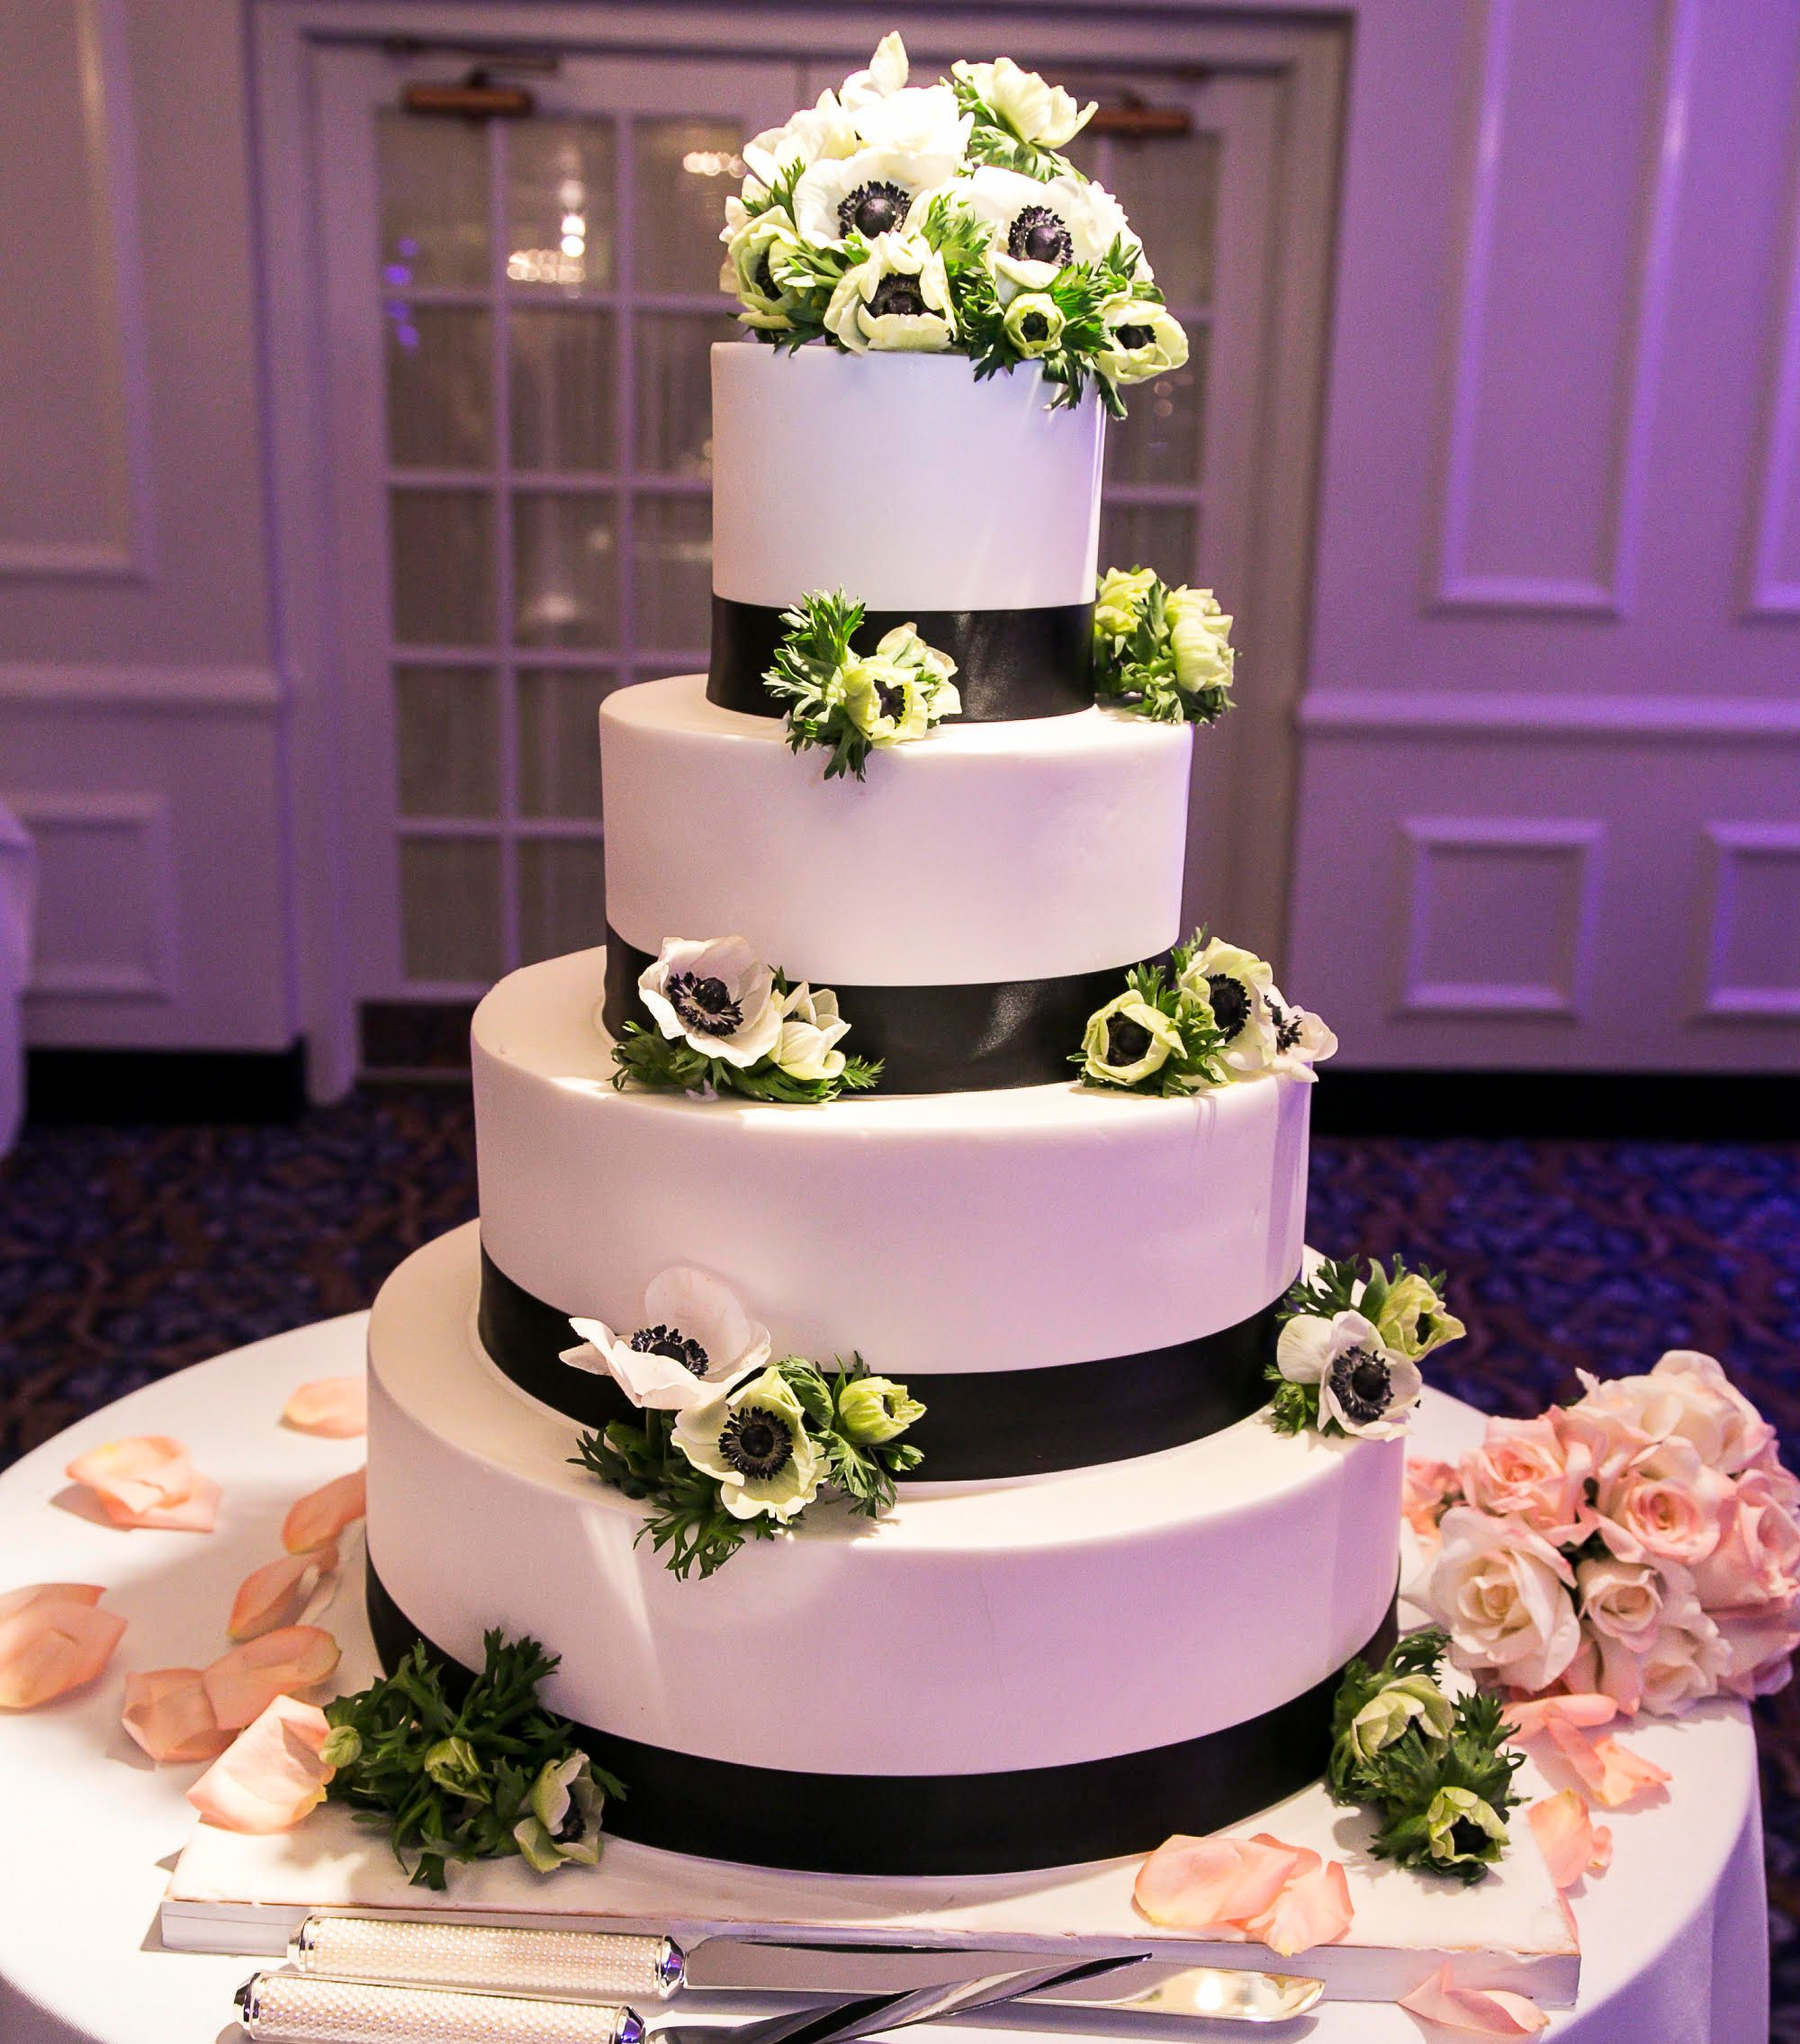 Beautiful Wedding Cakes By The Baking Grounds Bakery Café: This Four Layer Wedding Cake Is Simply Beautiful. The